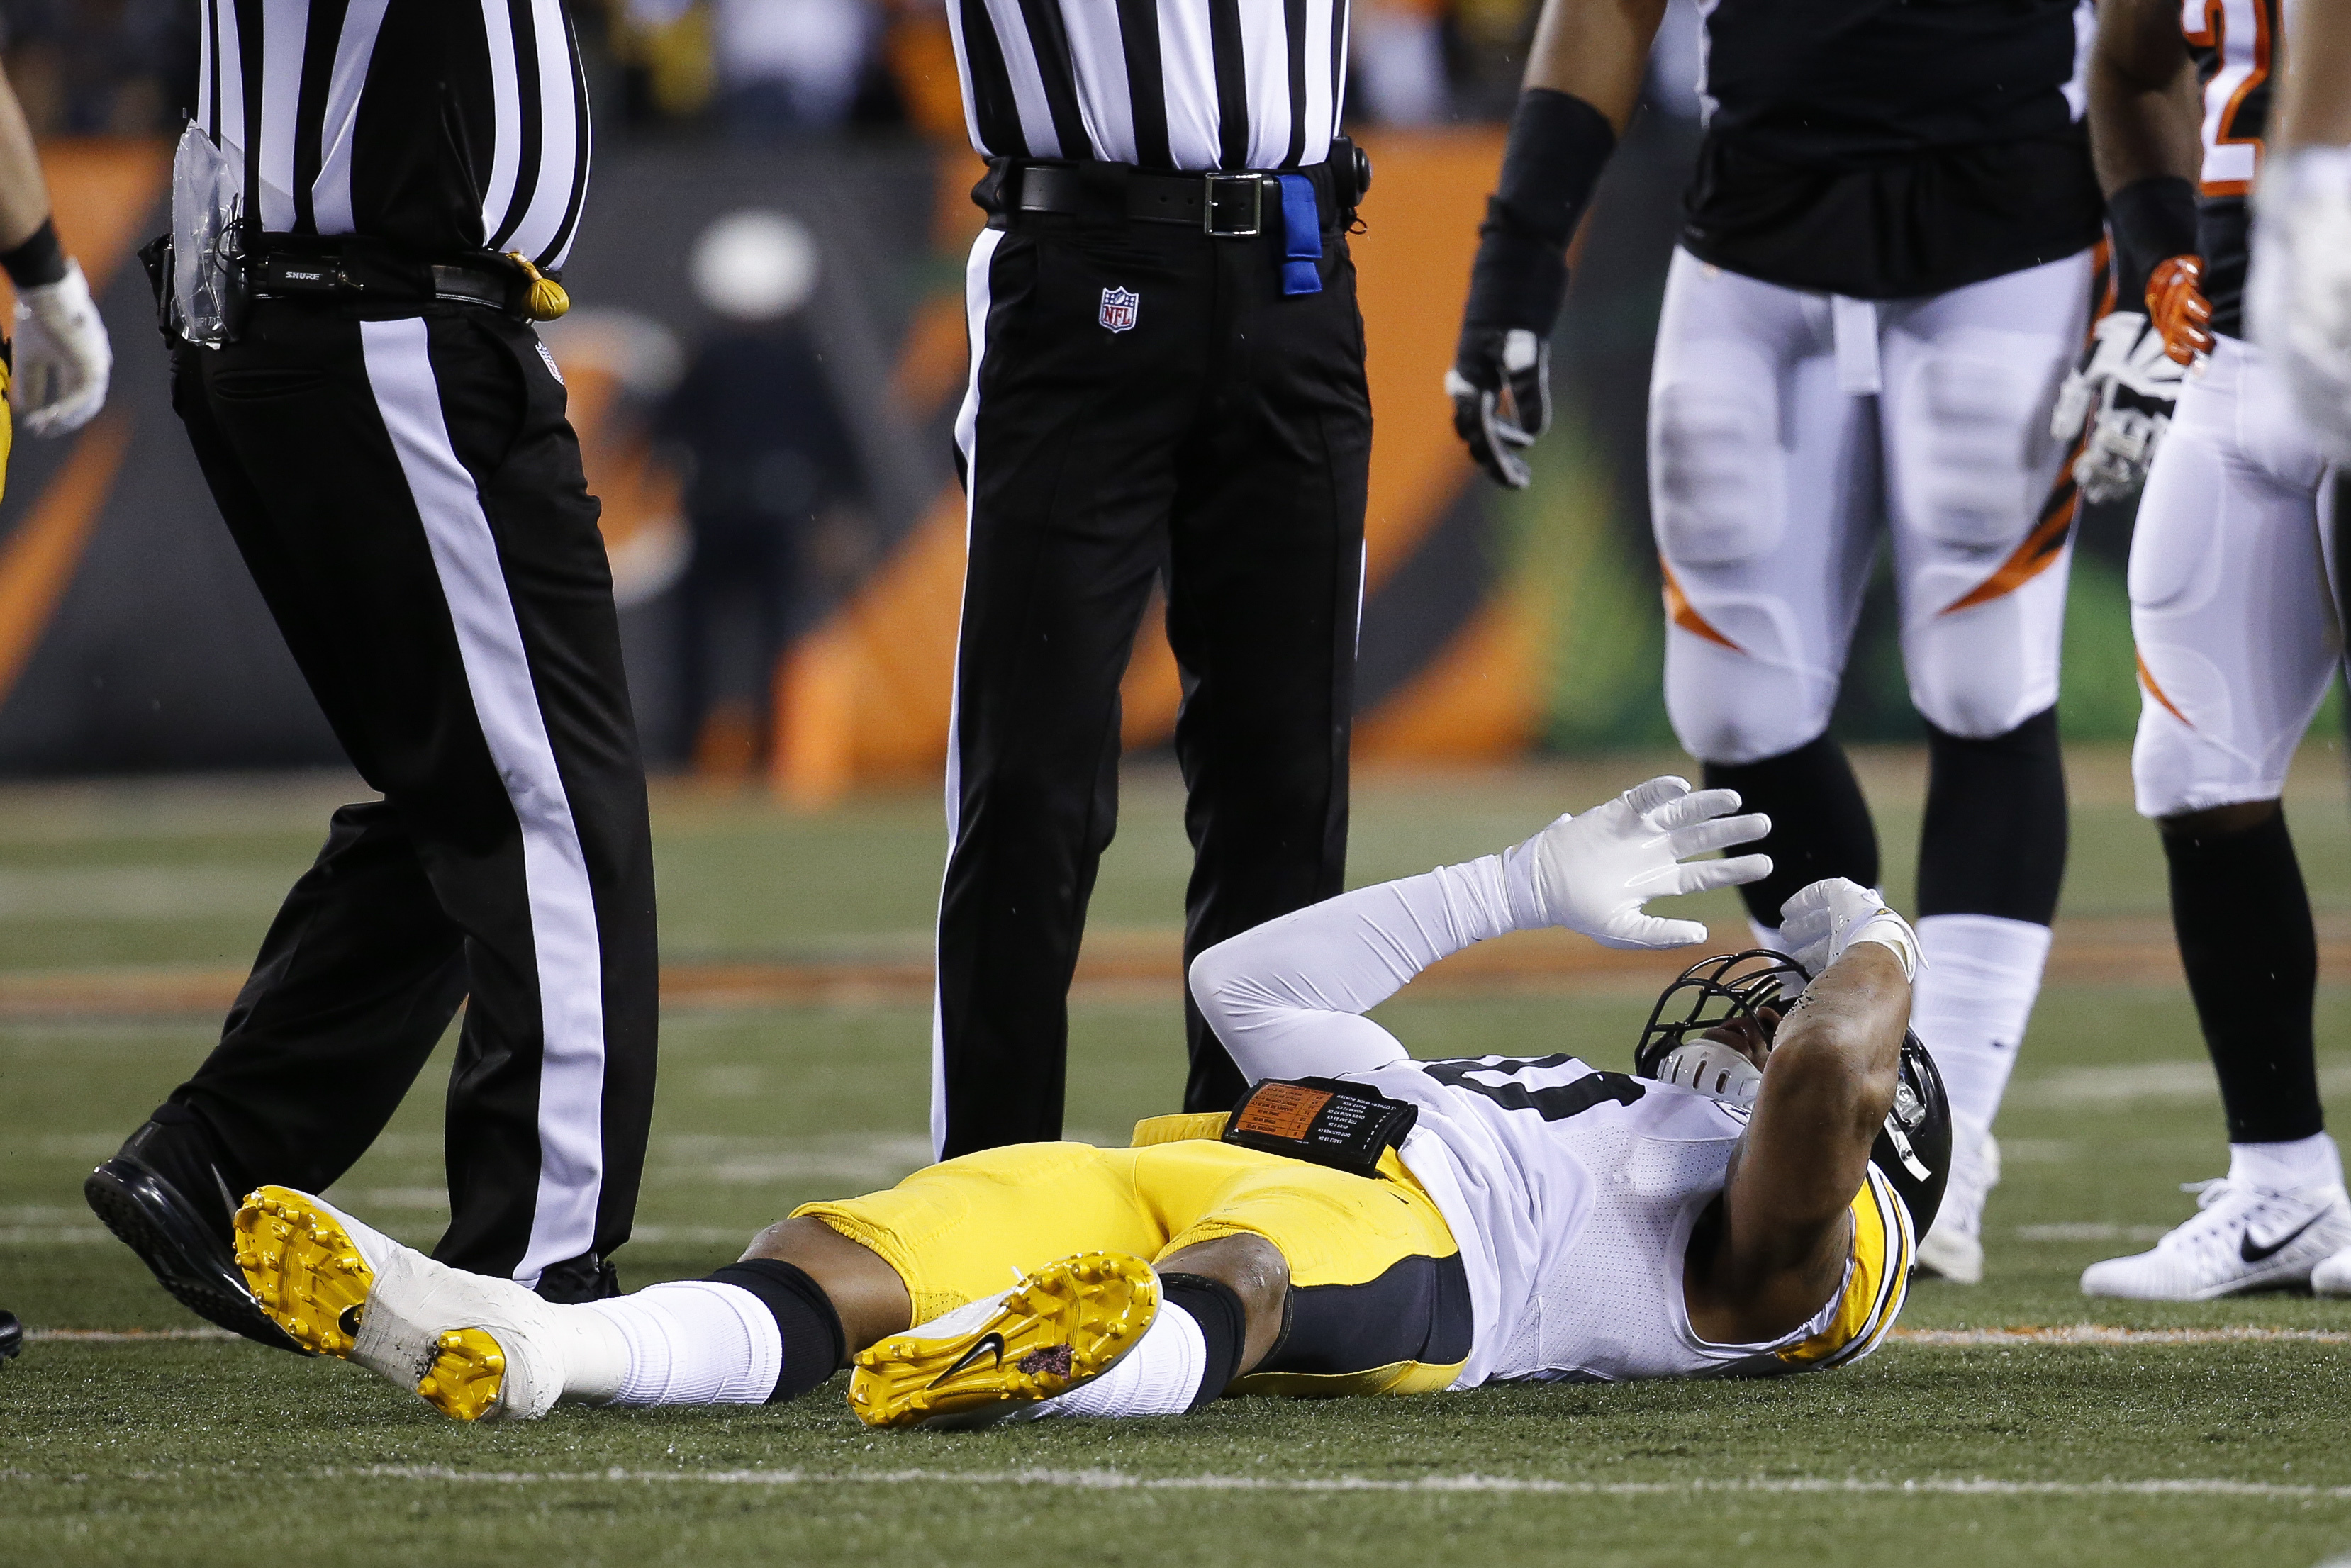 Pittsburgh Steelers inside linebacker Ryan Shazier lies on the field after an apparent injury in the first half of an NFL football game against the Cincinnati Bengals, Monday, Dec. 4, 2017, in Cincinnati. (AP Photo/Frank Victores)